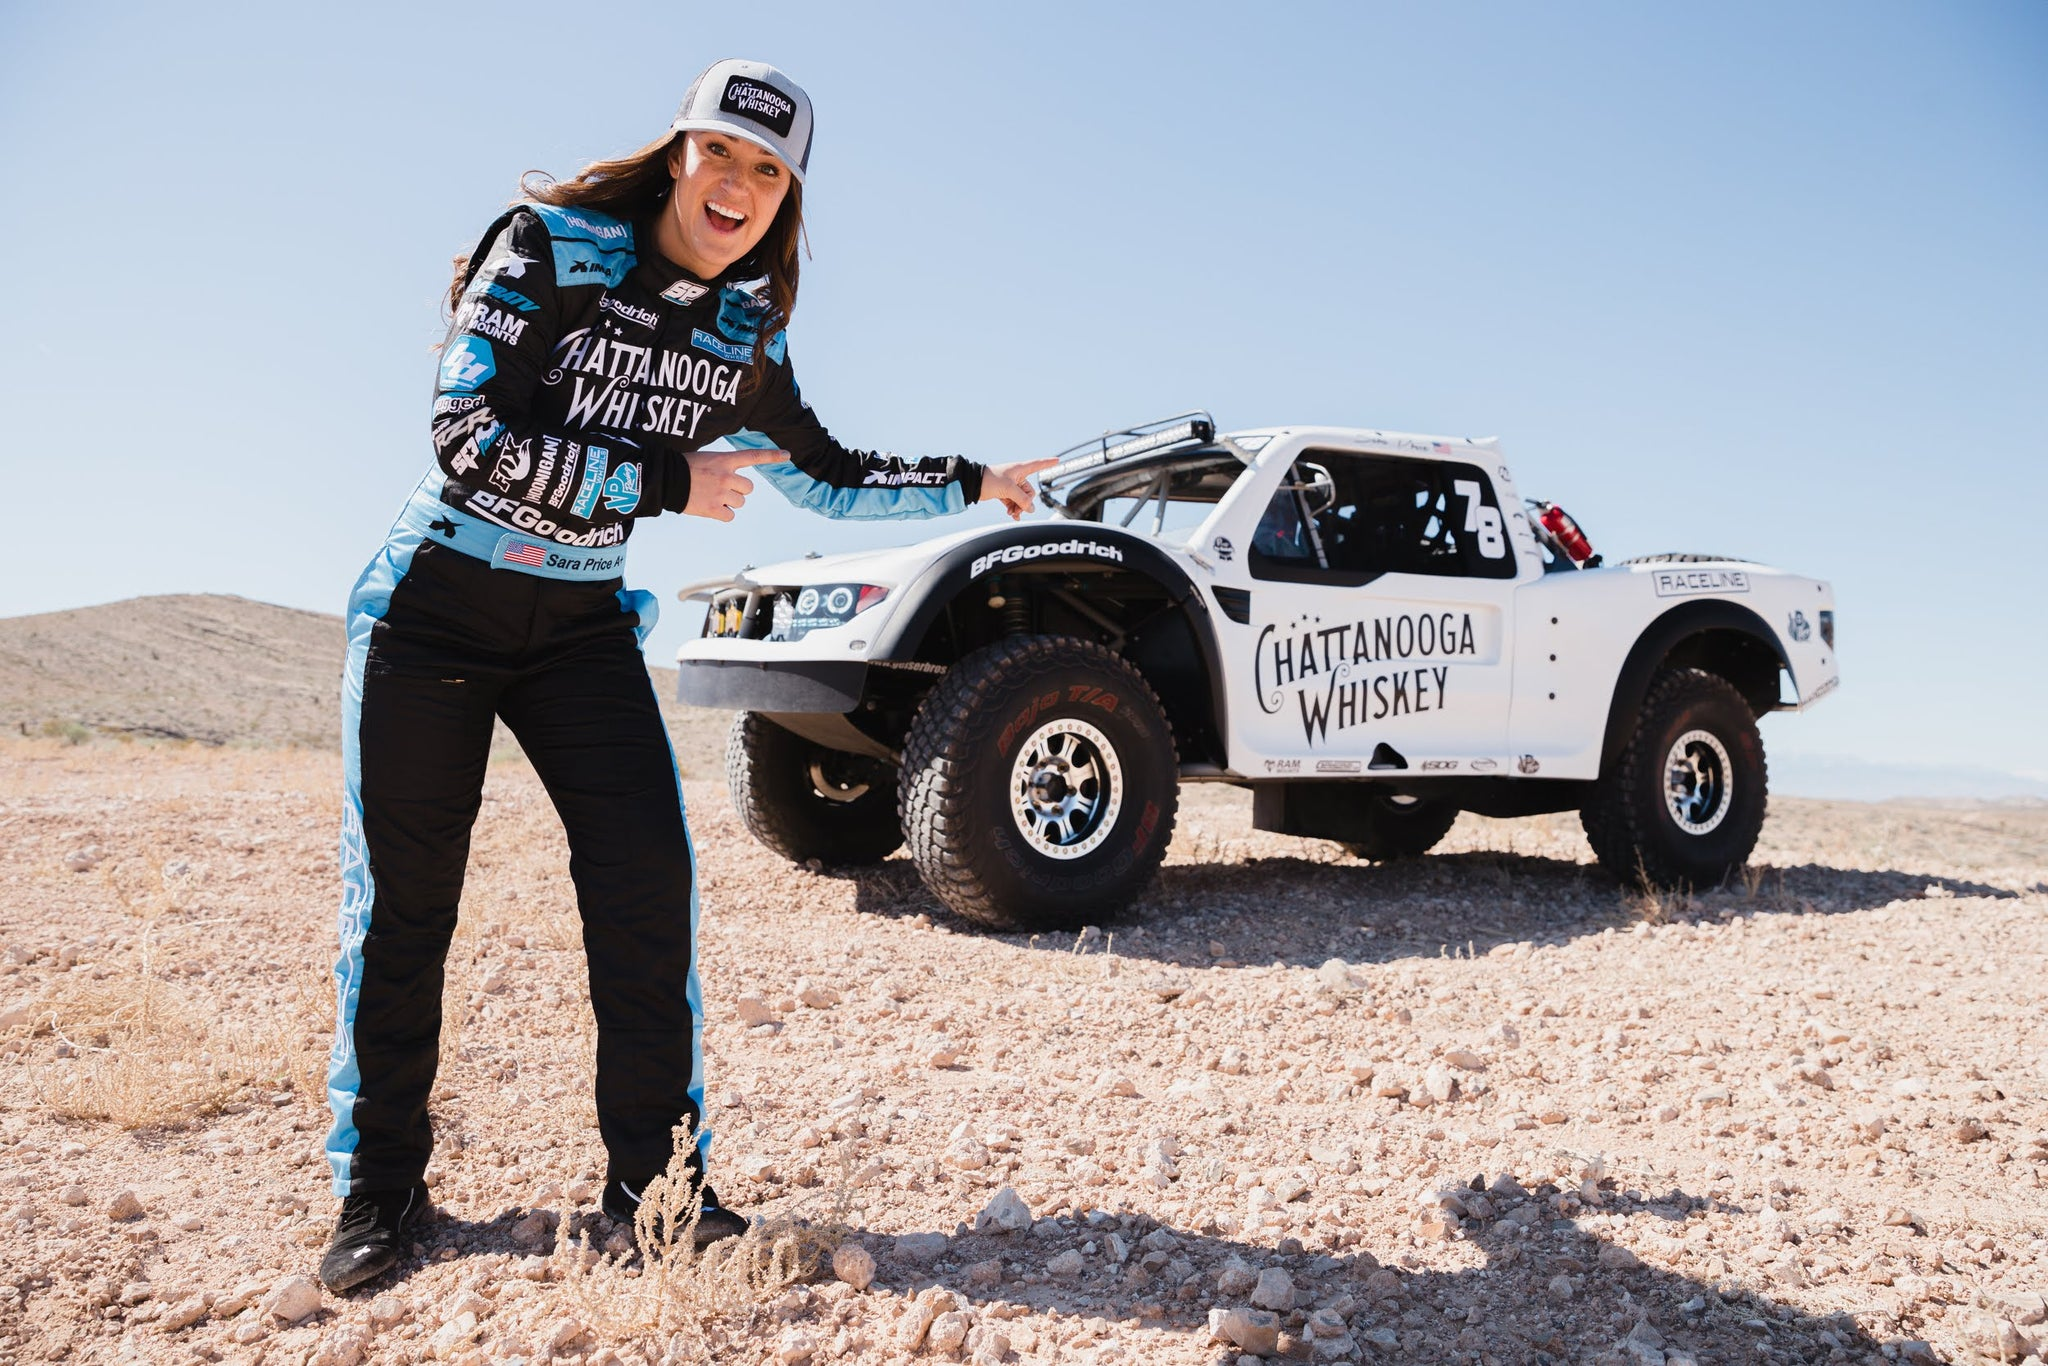 Sara Price to Make Trophy Truck Debut with Chattanooga Whiskey at the Prestigious Mint 400